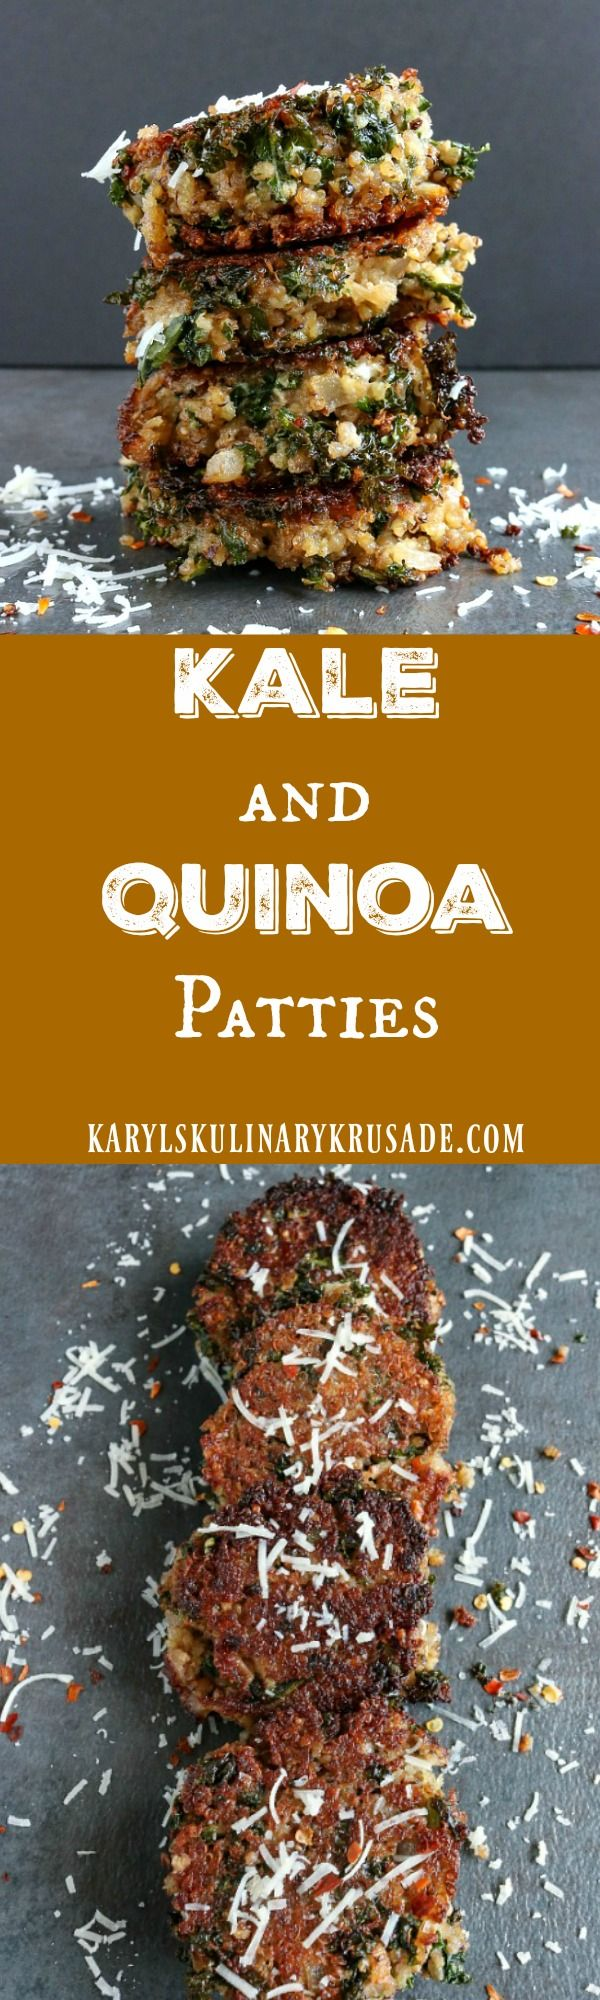 Kale and Quinoa Patties. A wnderfully flavorful combination of superfoods, these pan-fried patties are perfect for a hearty lunch that your family will love #kale #quinoa #superfoods #cheese #panfried #lunch #healthy #hearthealthy #karylskulinarykrusade